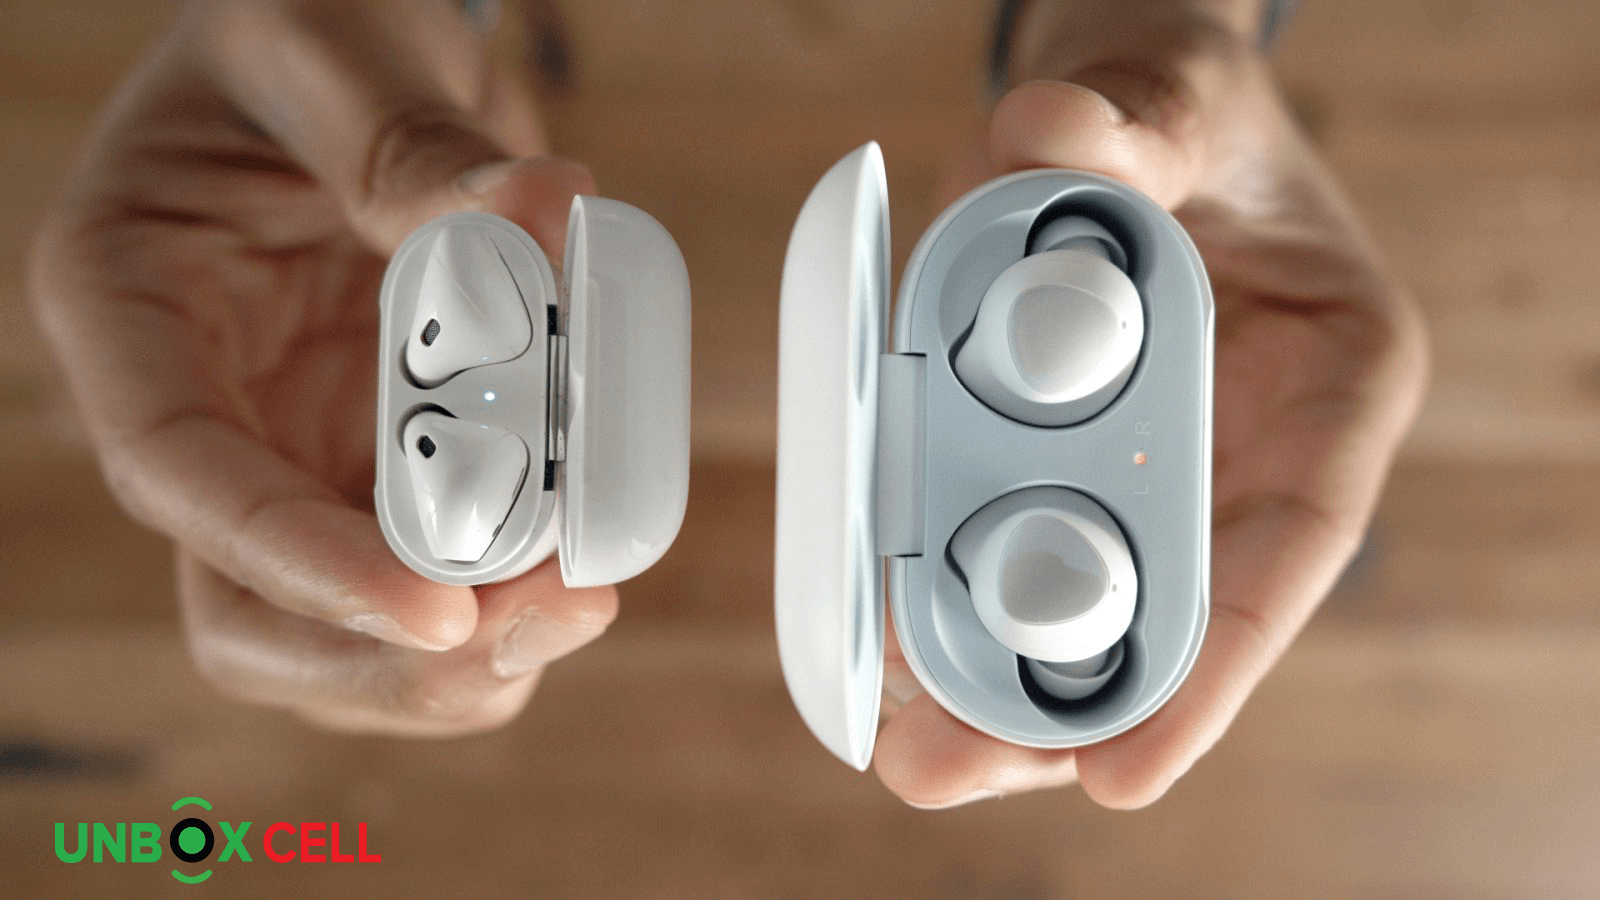 Apple Air Pods 2 vs Samsung Galaxy Buds The Connectivity- unbox cell